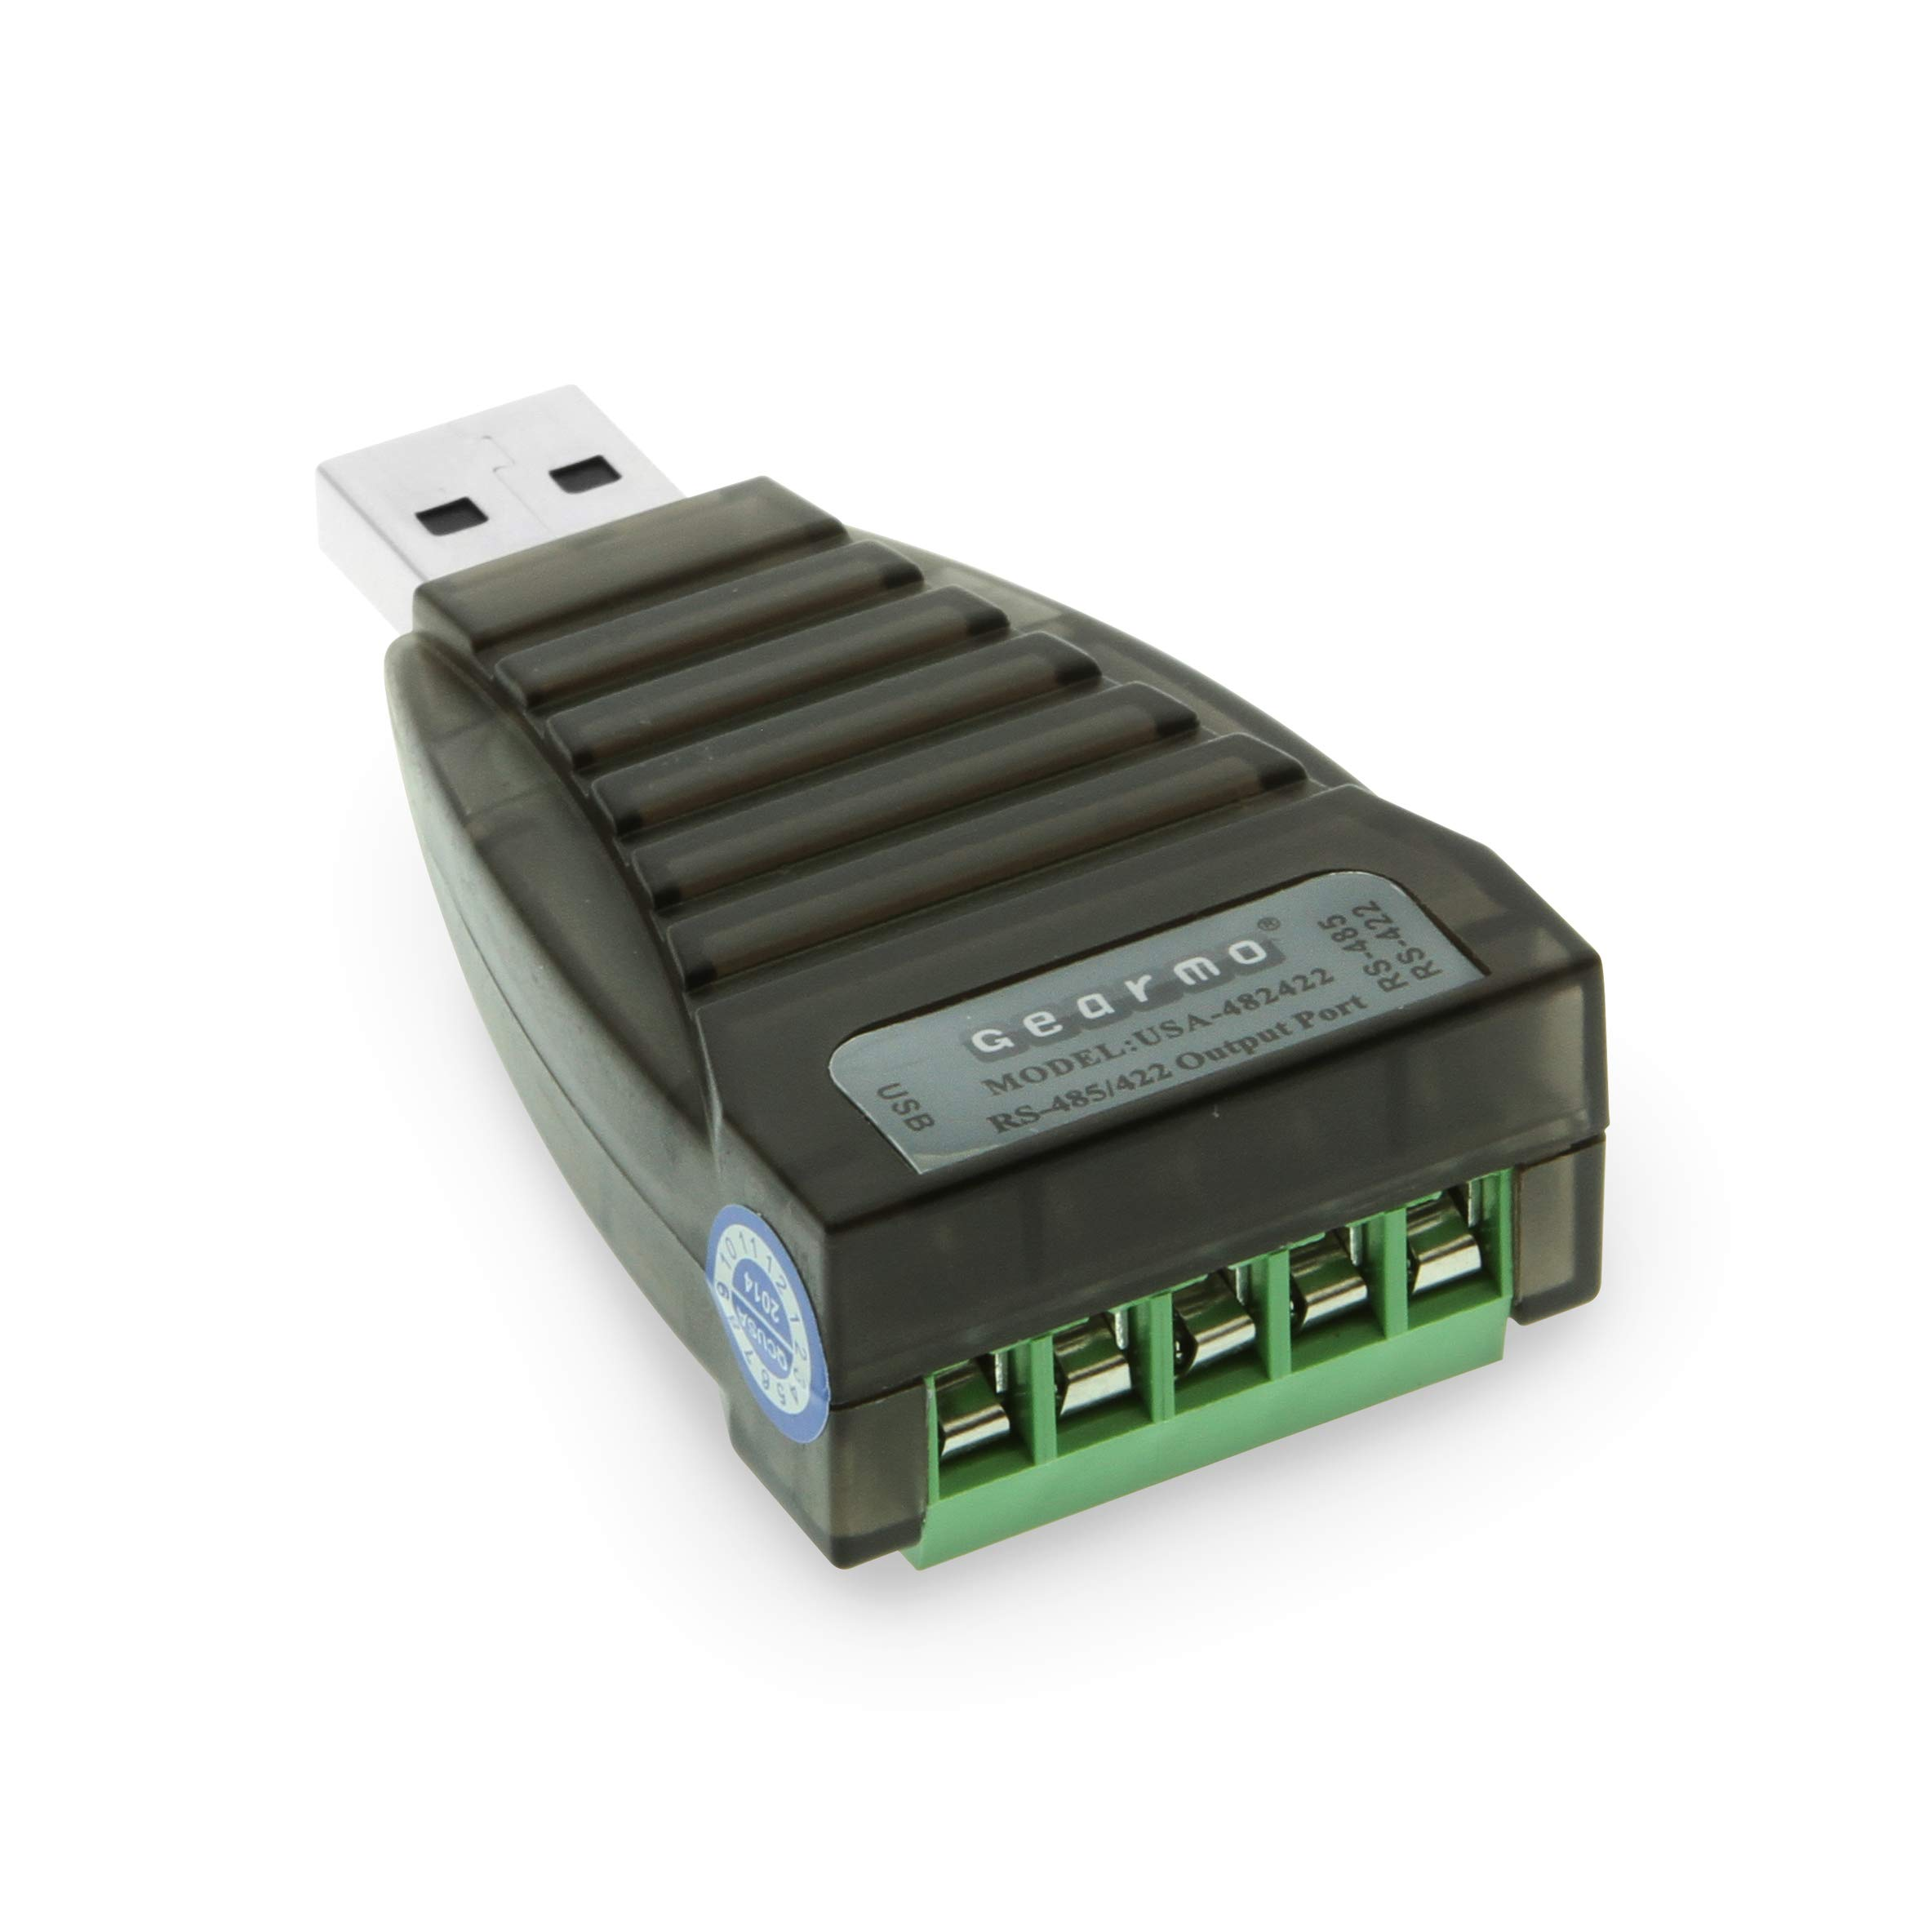 GearMo Mini USB to RS485 / RS422 Converter FTDI CHIP with Screw Terminals and Windows 10 Support by Gearmo